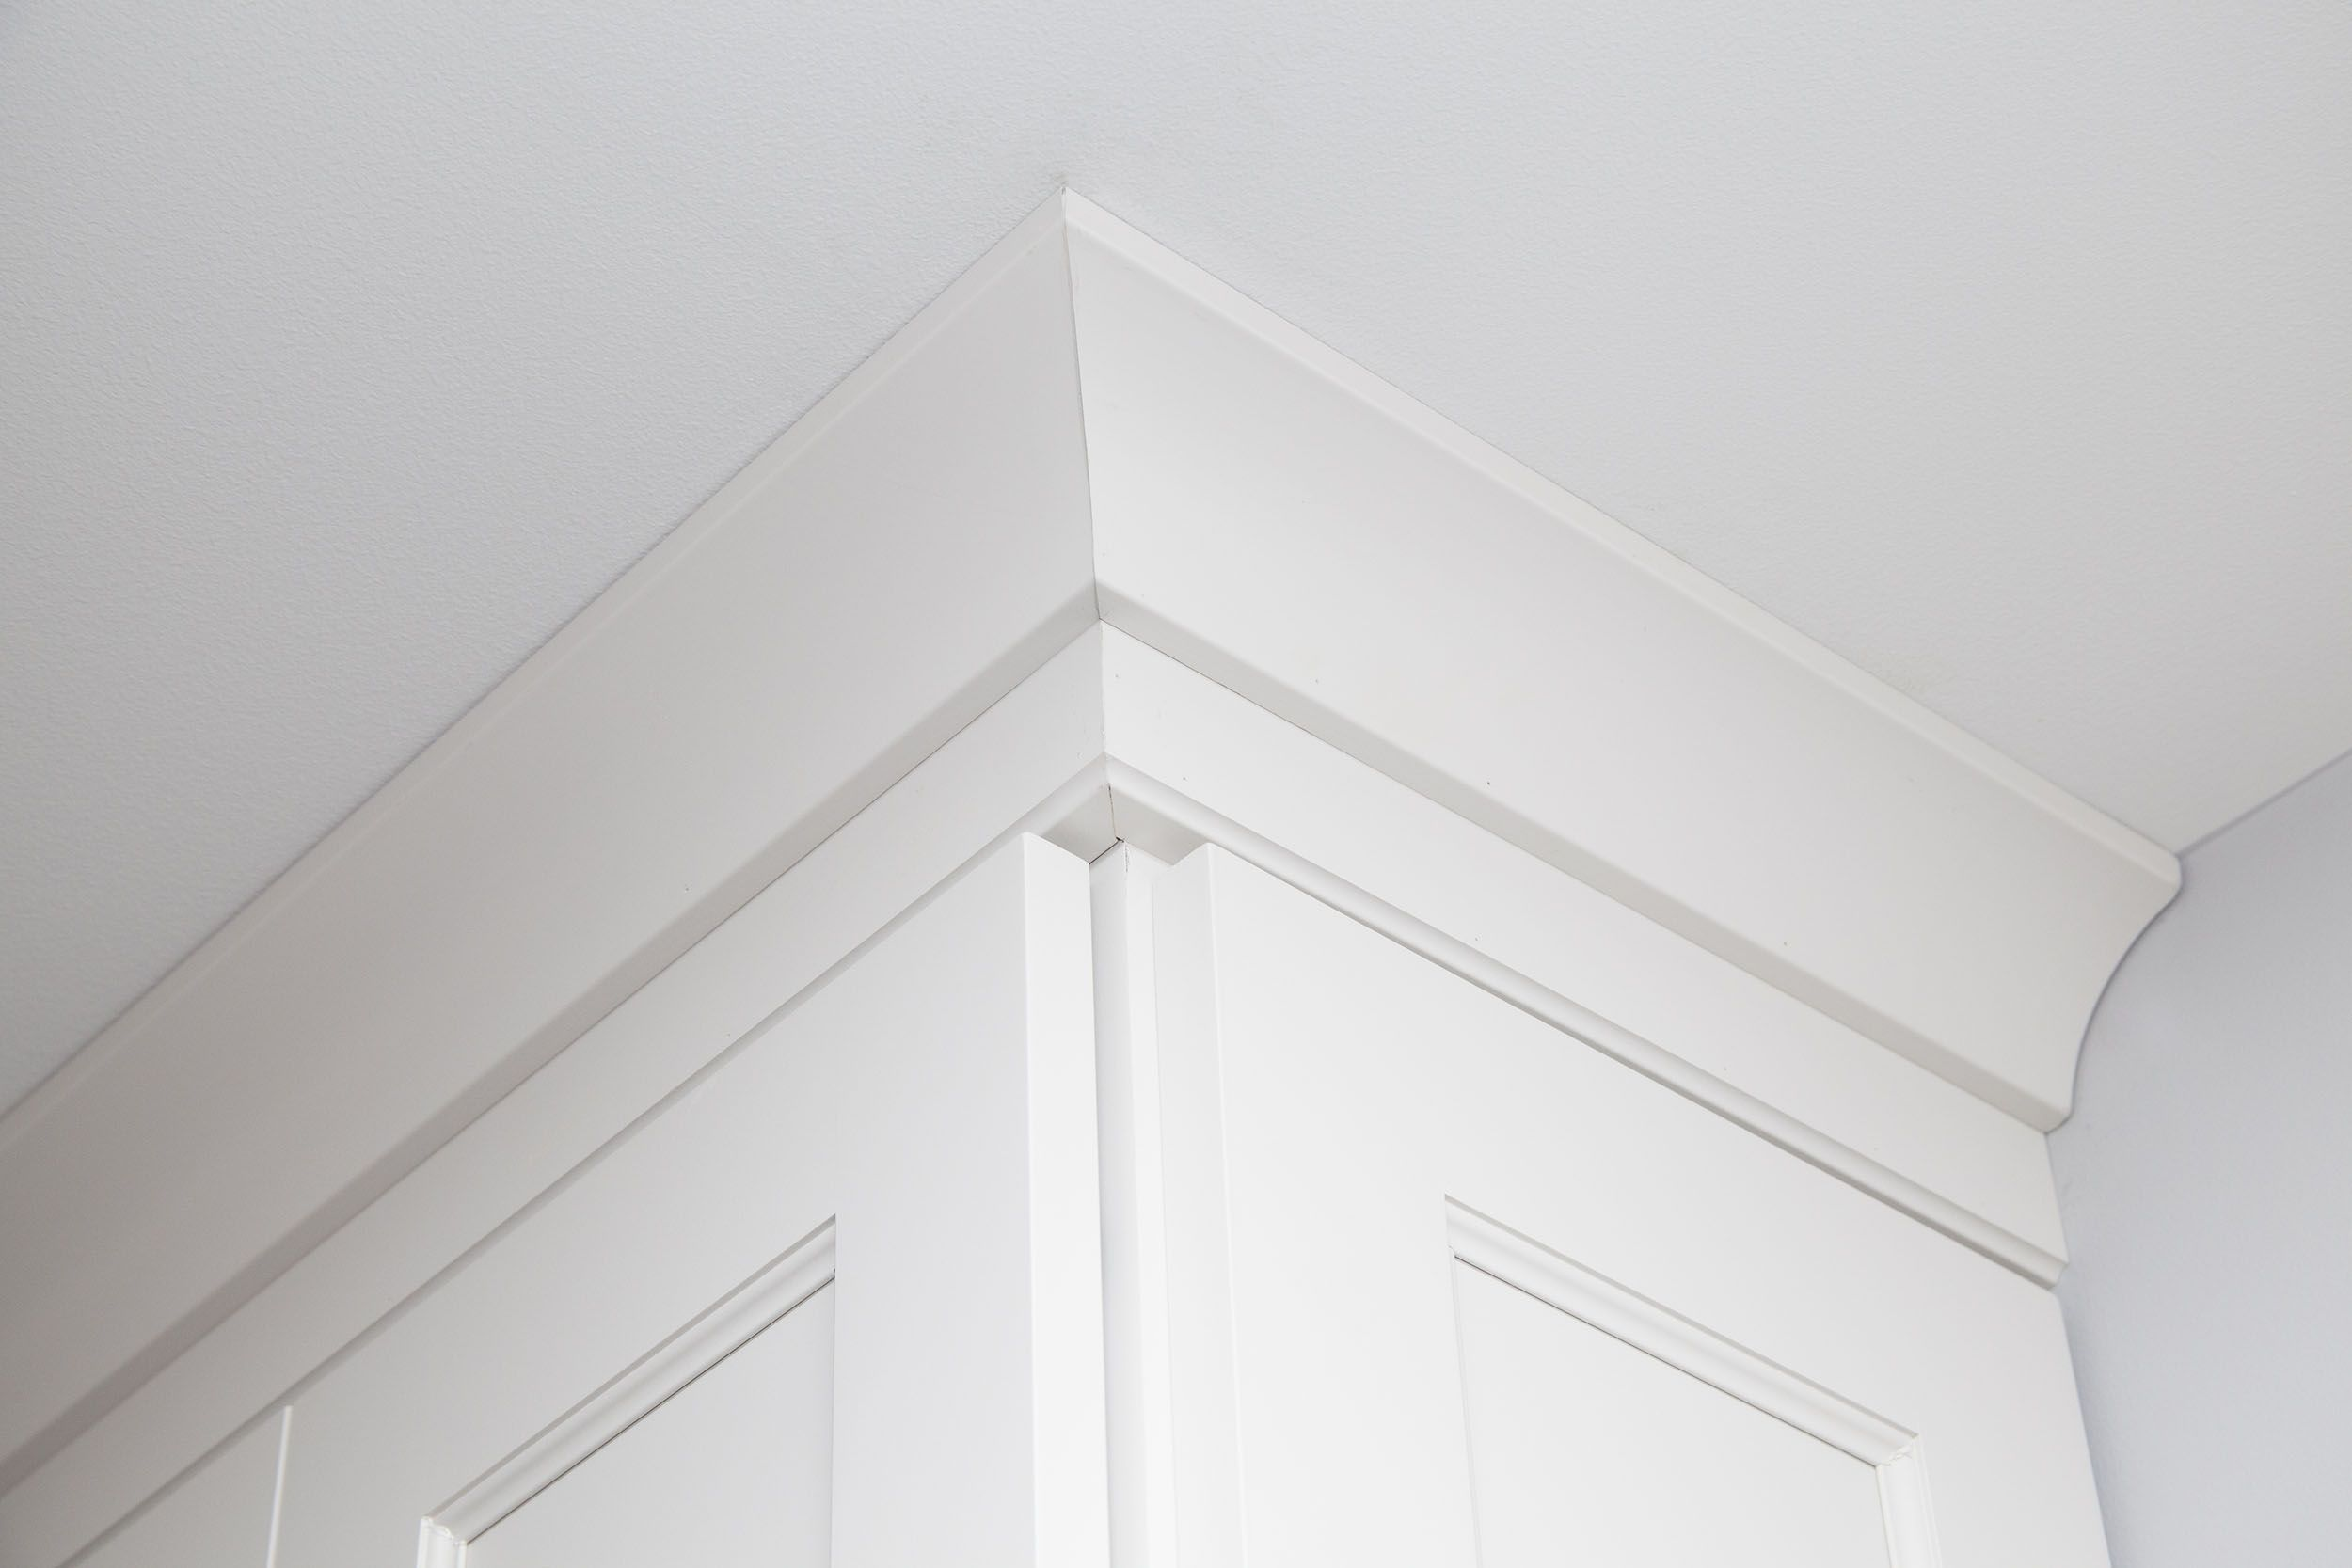 This Is A Crown Molding Detail We Used A Simple Crown Molding With A Small Detail Crown Molding Kitchen Kitchen Cabinet Molding Kitchen Cabinet Crown Molding